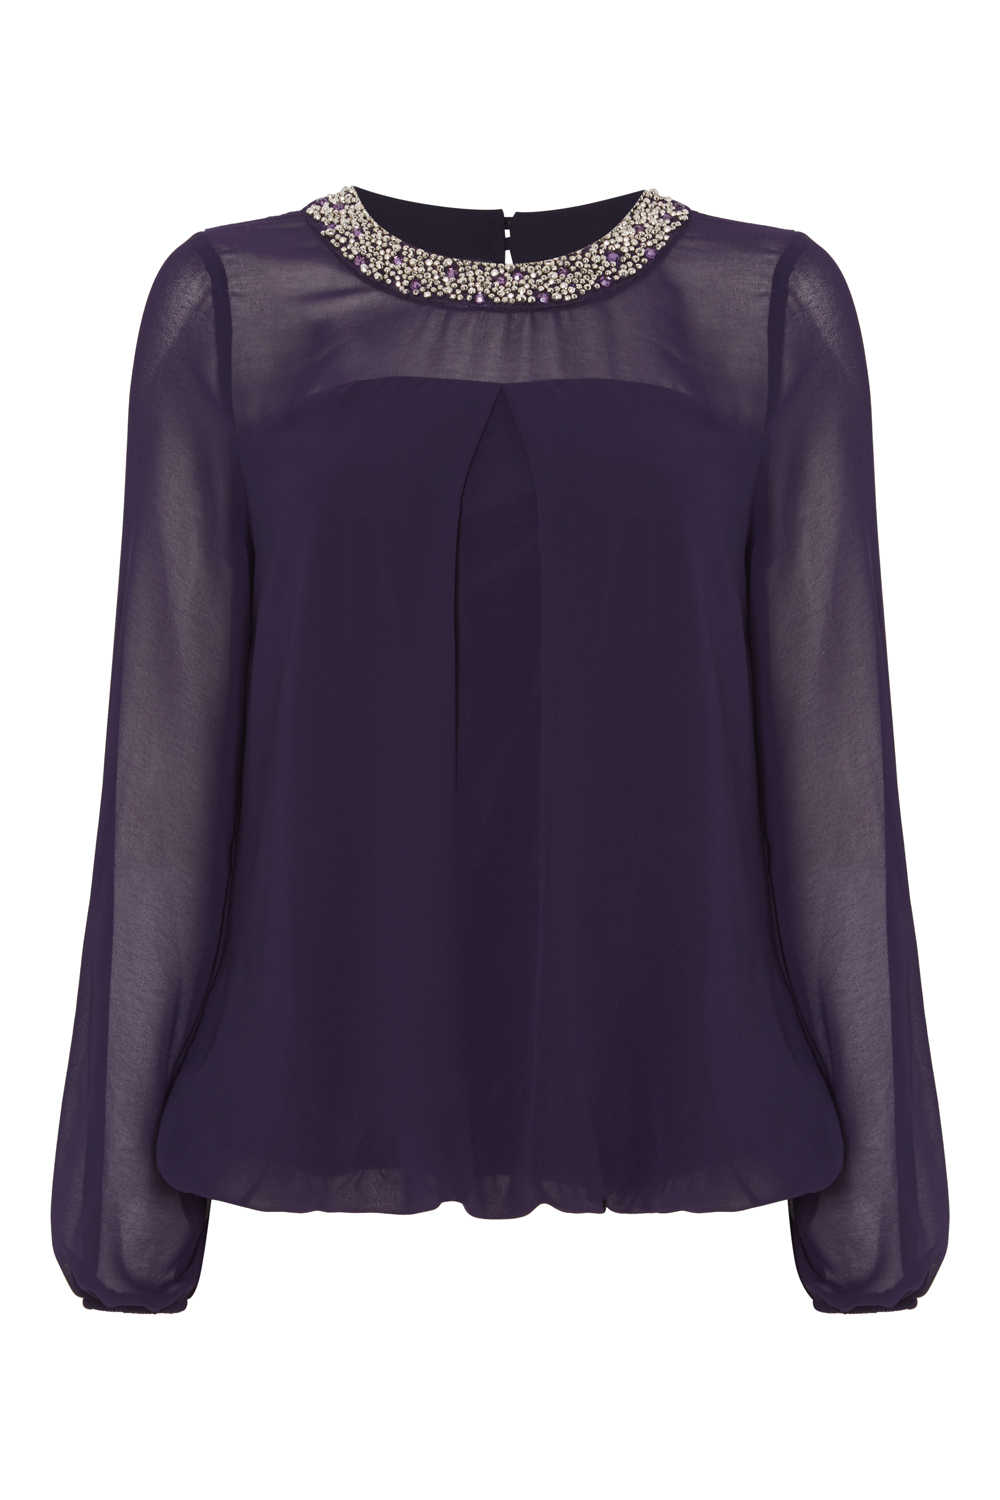 Shop for womens embellished tops online at Target. Free shipping on purchases over $35 and save 5% every day with your Target REDcard.